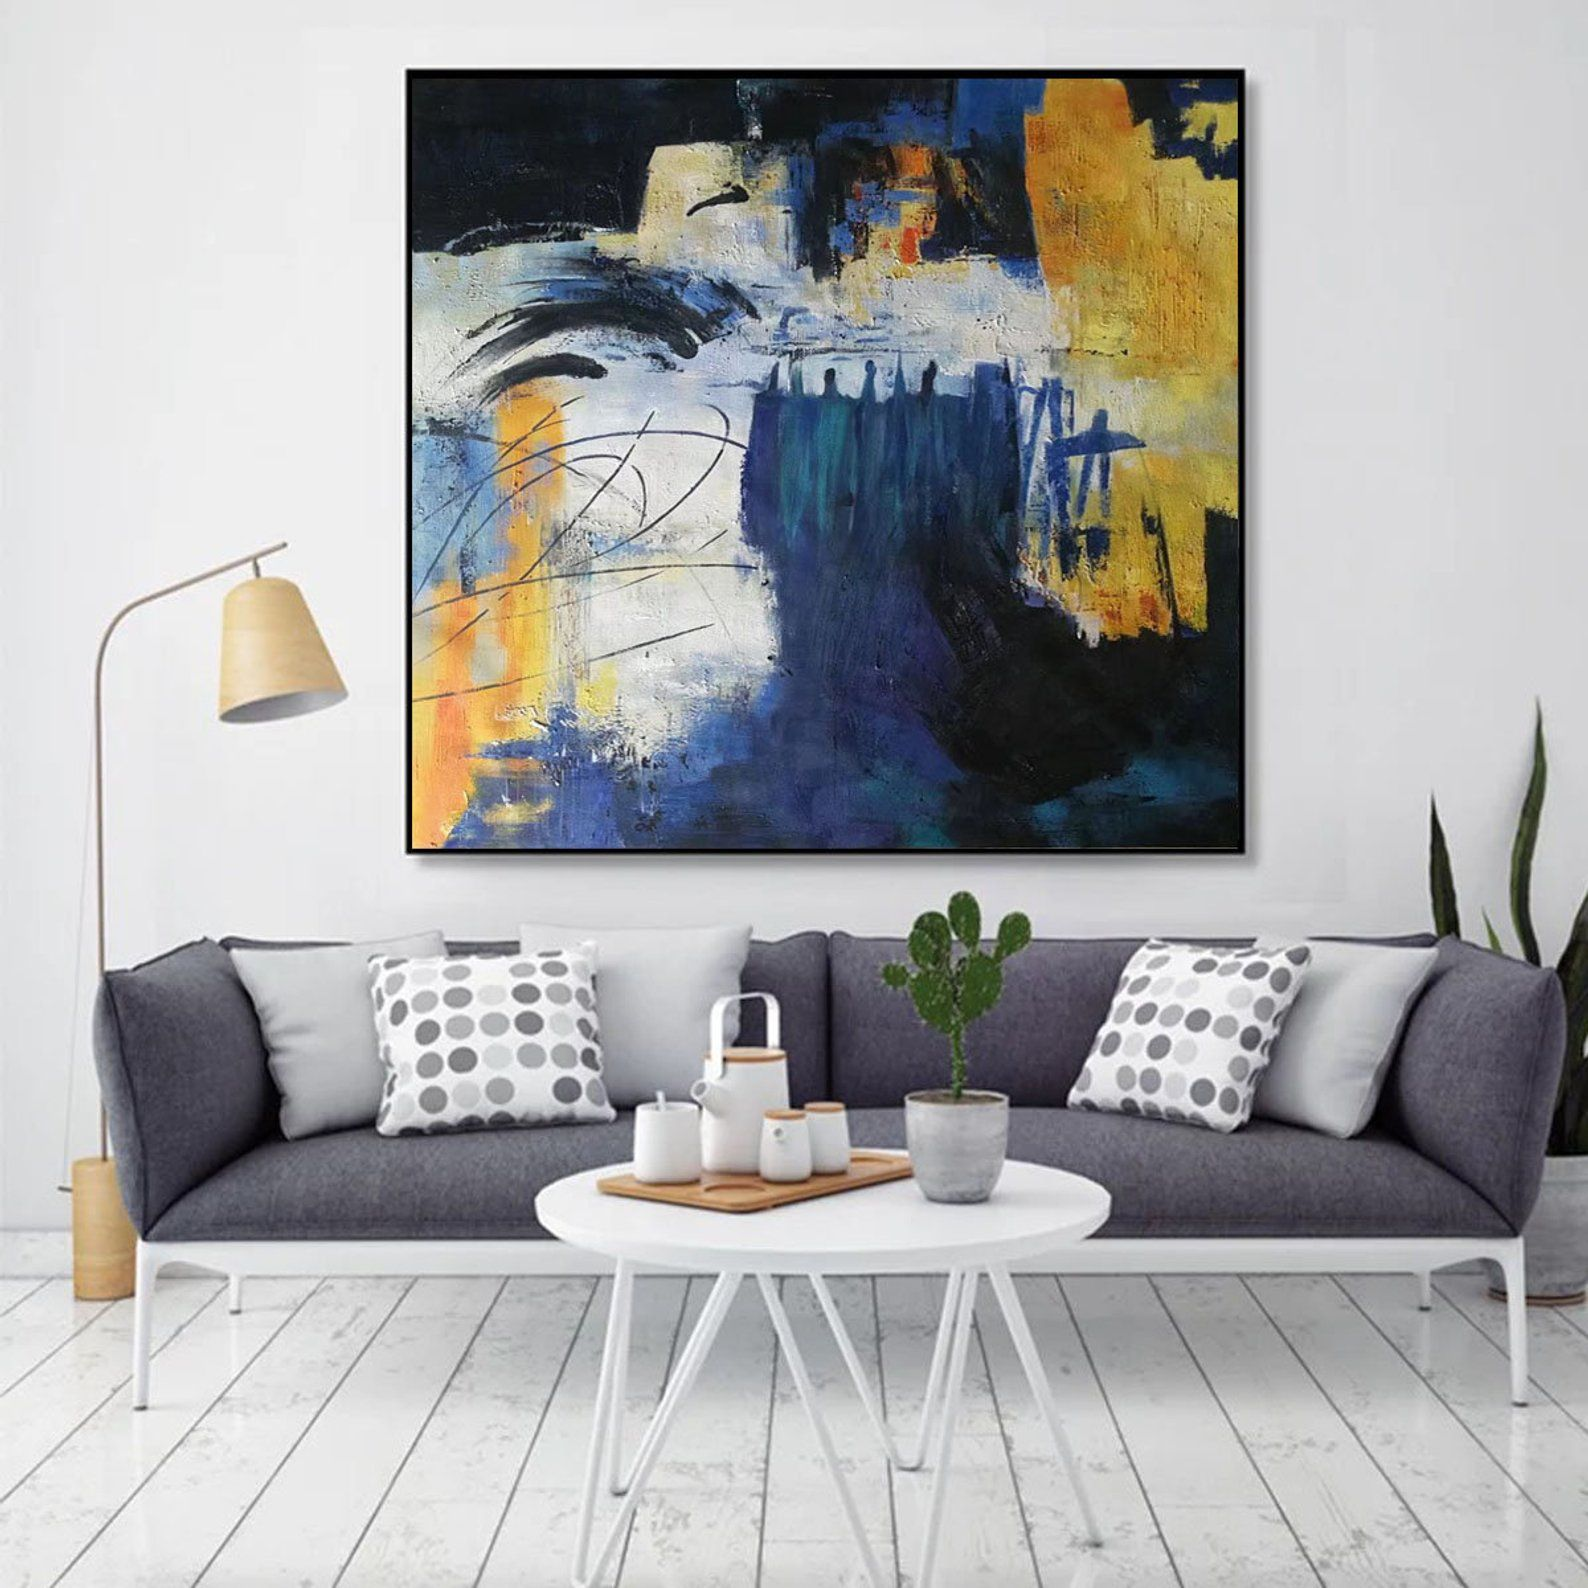 Large Paintings For Sale Large Canvas Art For Living Room Abstract Acrylic Painting Extra Large Artwork On Canvas Massive Wall Art Em81 Large Canvas Wall Art Extra Large Wall Art Living